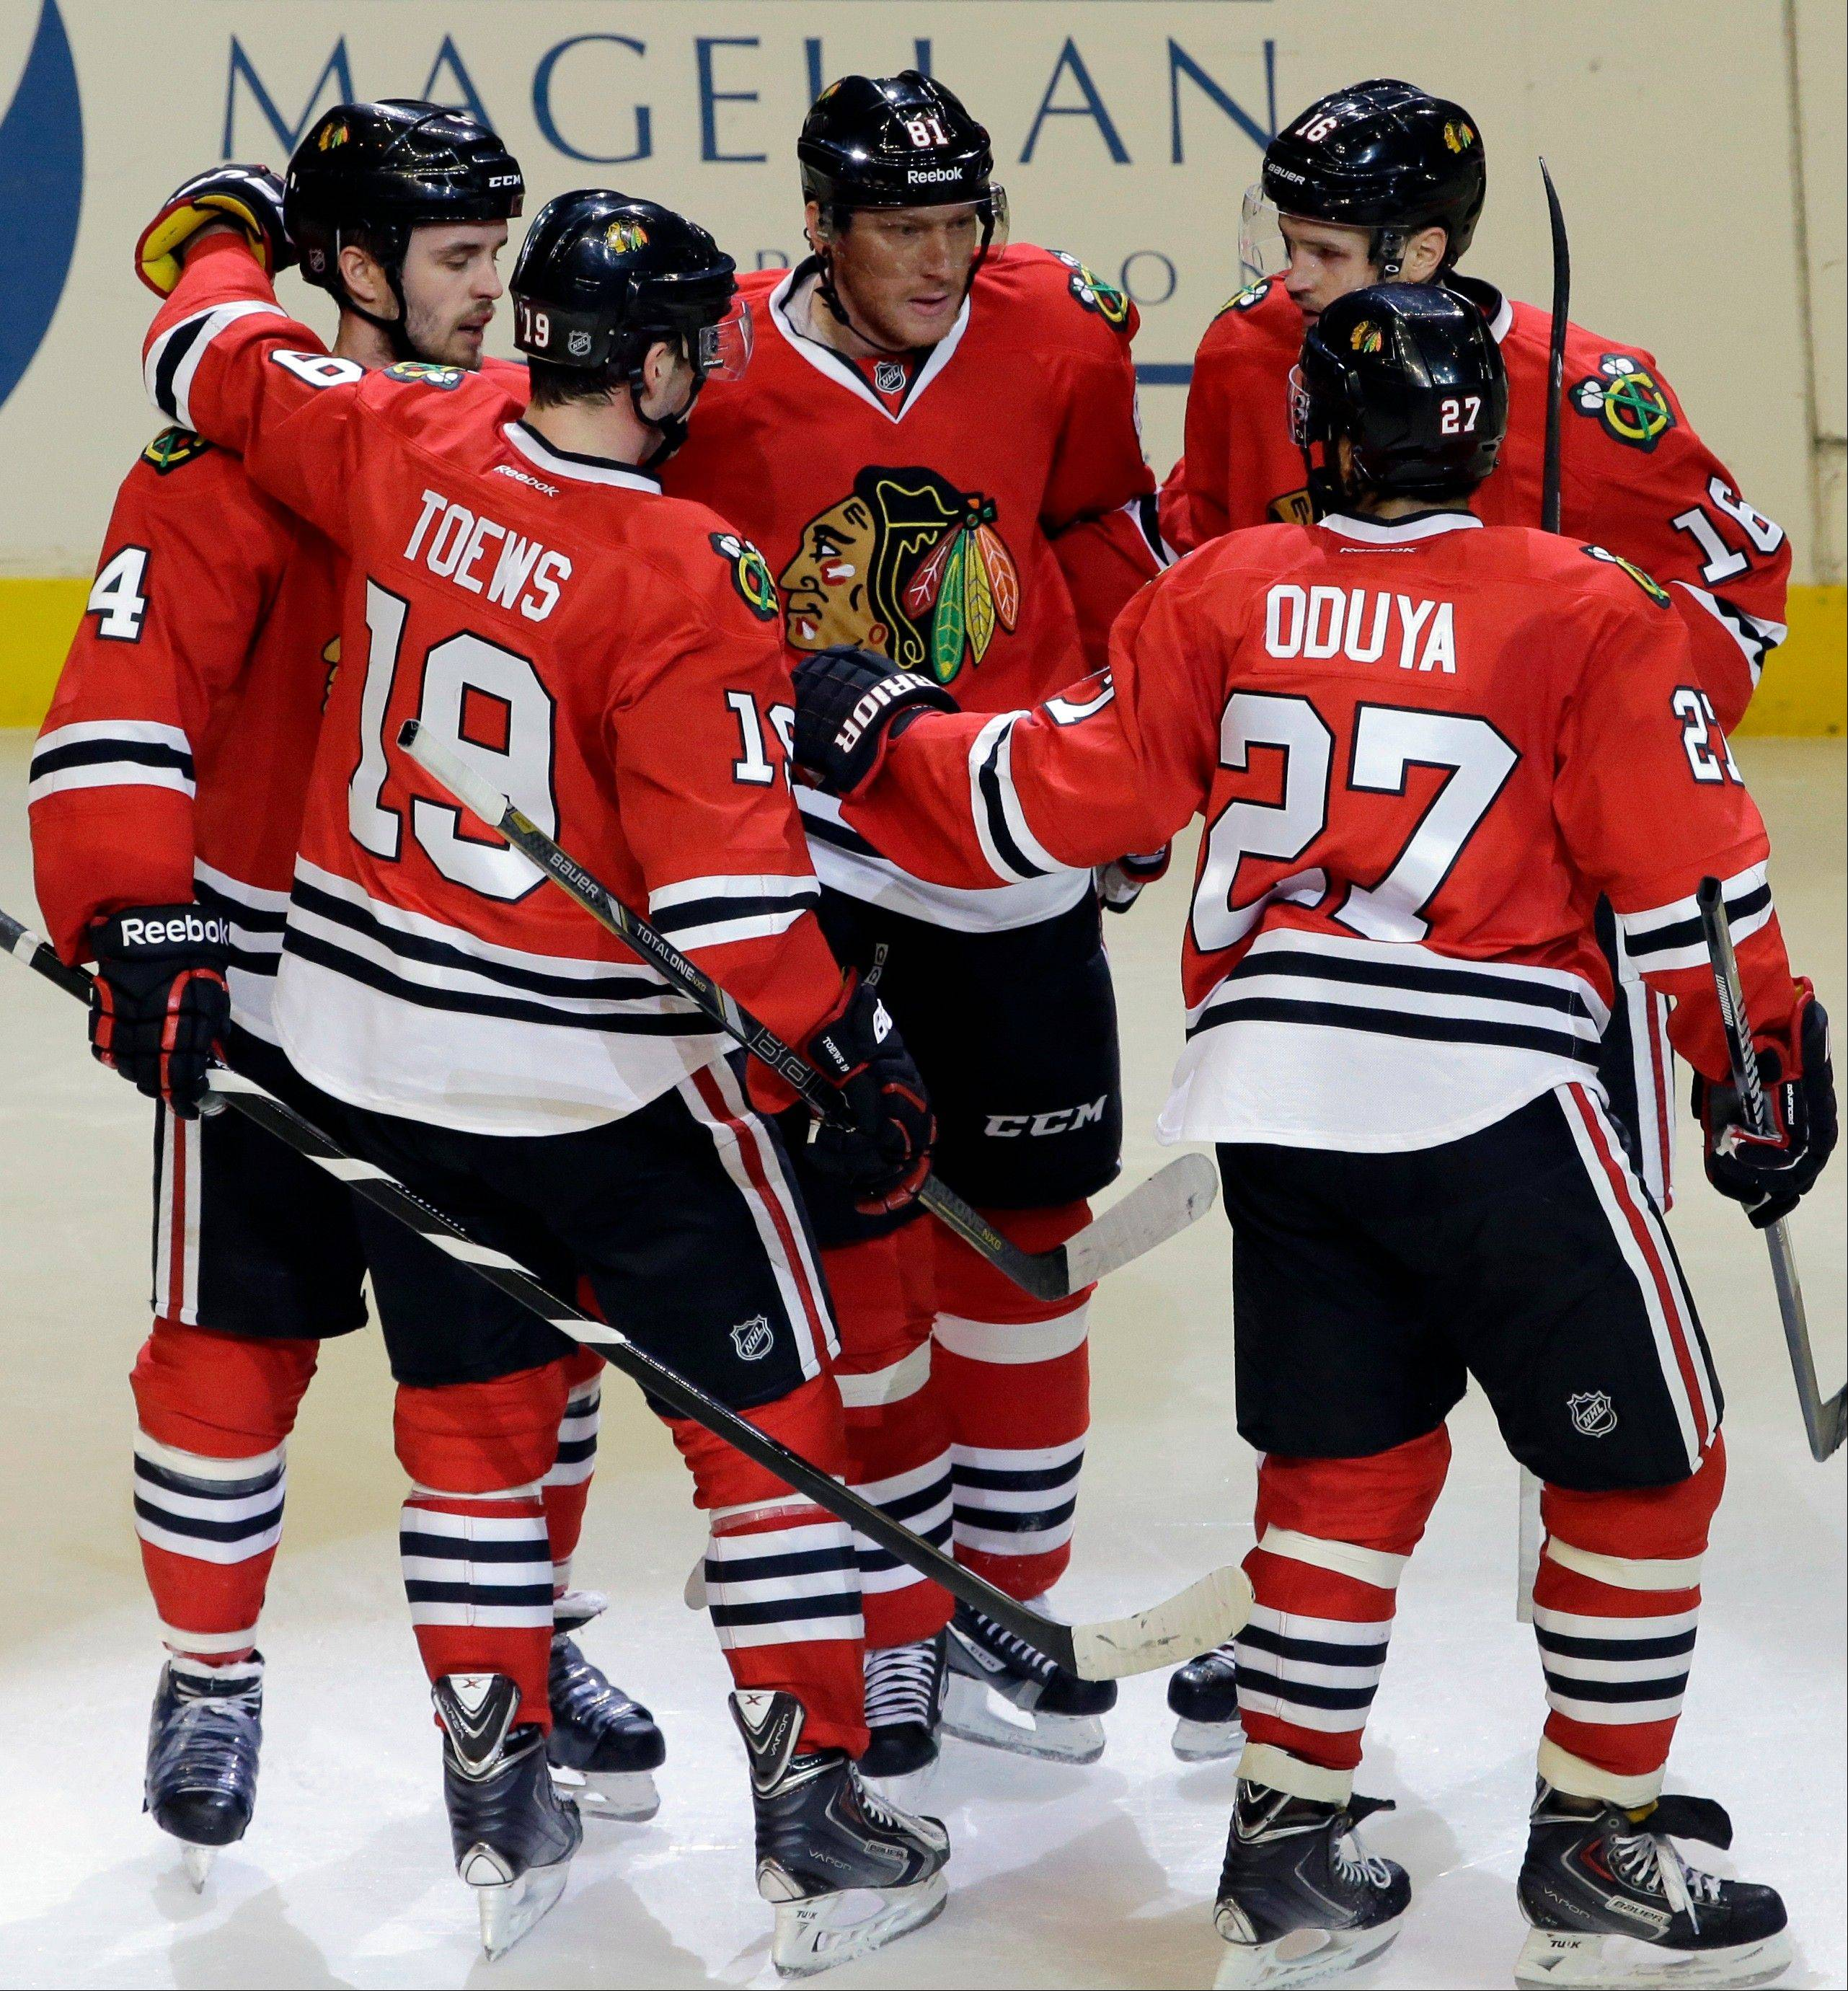 The Blackhawks' Marian Hossa, middle, celebrates with teammates after scoring his second goal during Friday's victory over Anaheim at the United Center.